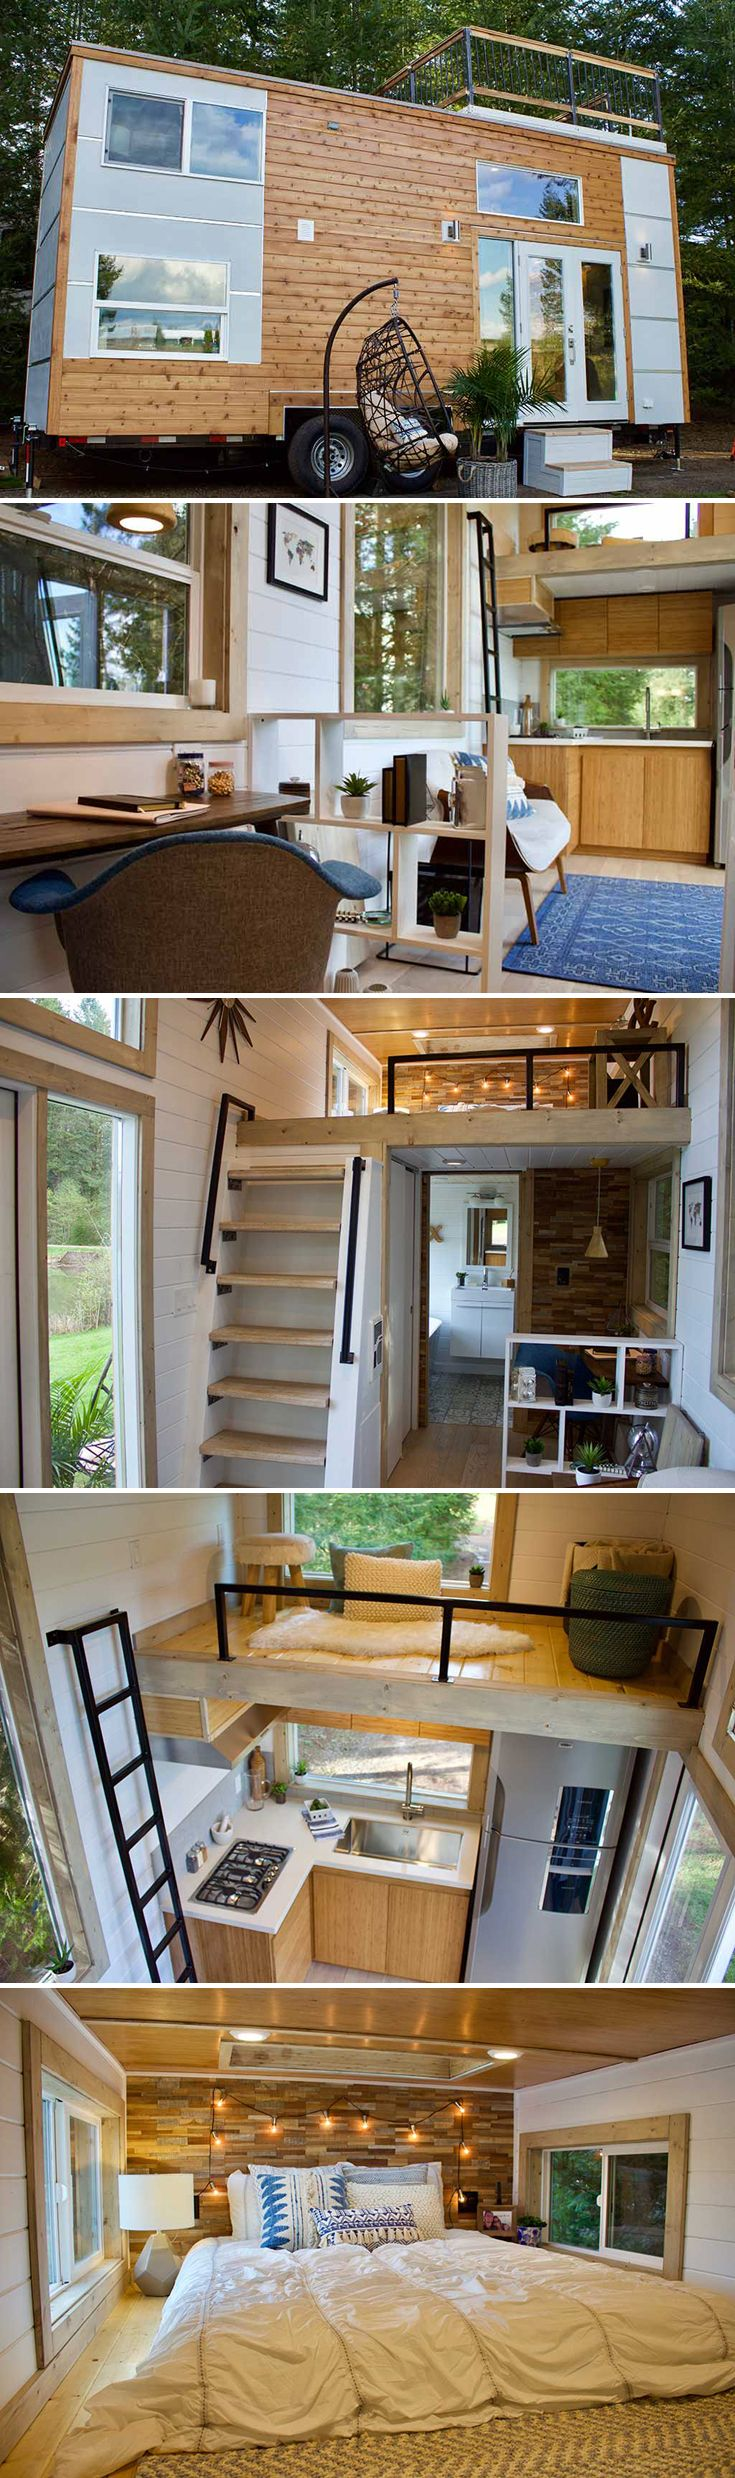 The Live/Work Tiny Home includes a rooftop deck, home office, bedroom loft, storage loft, and an L-shaped kitchen with cooktop and full size refrigerator.